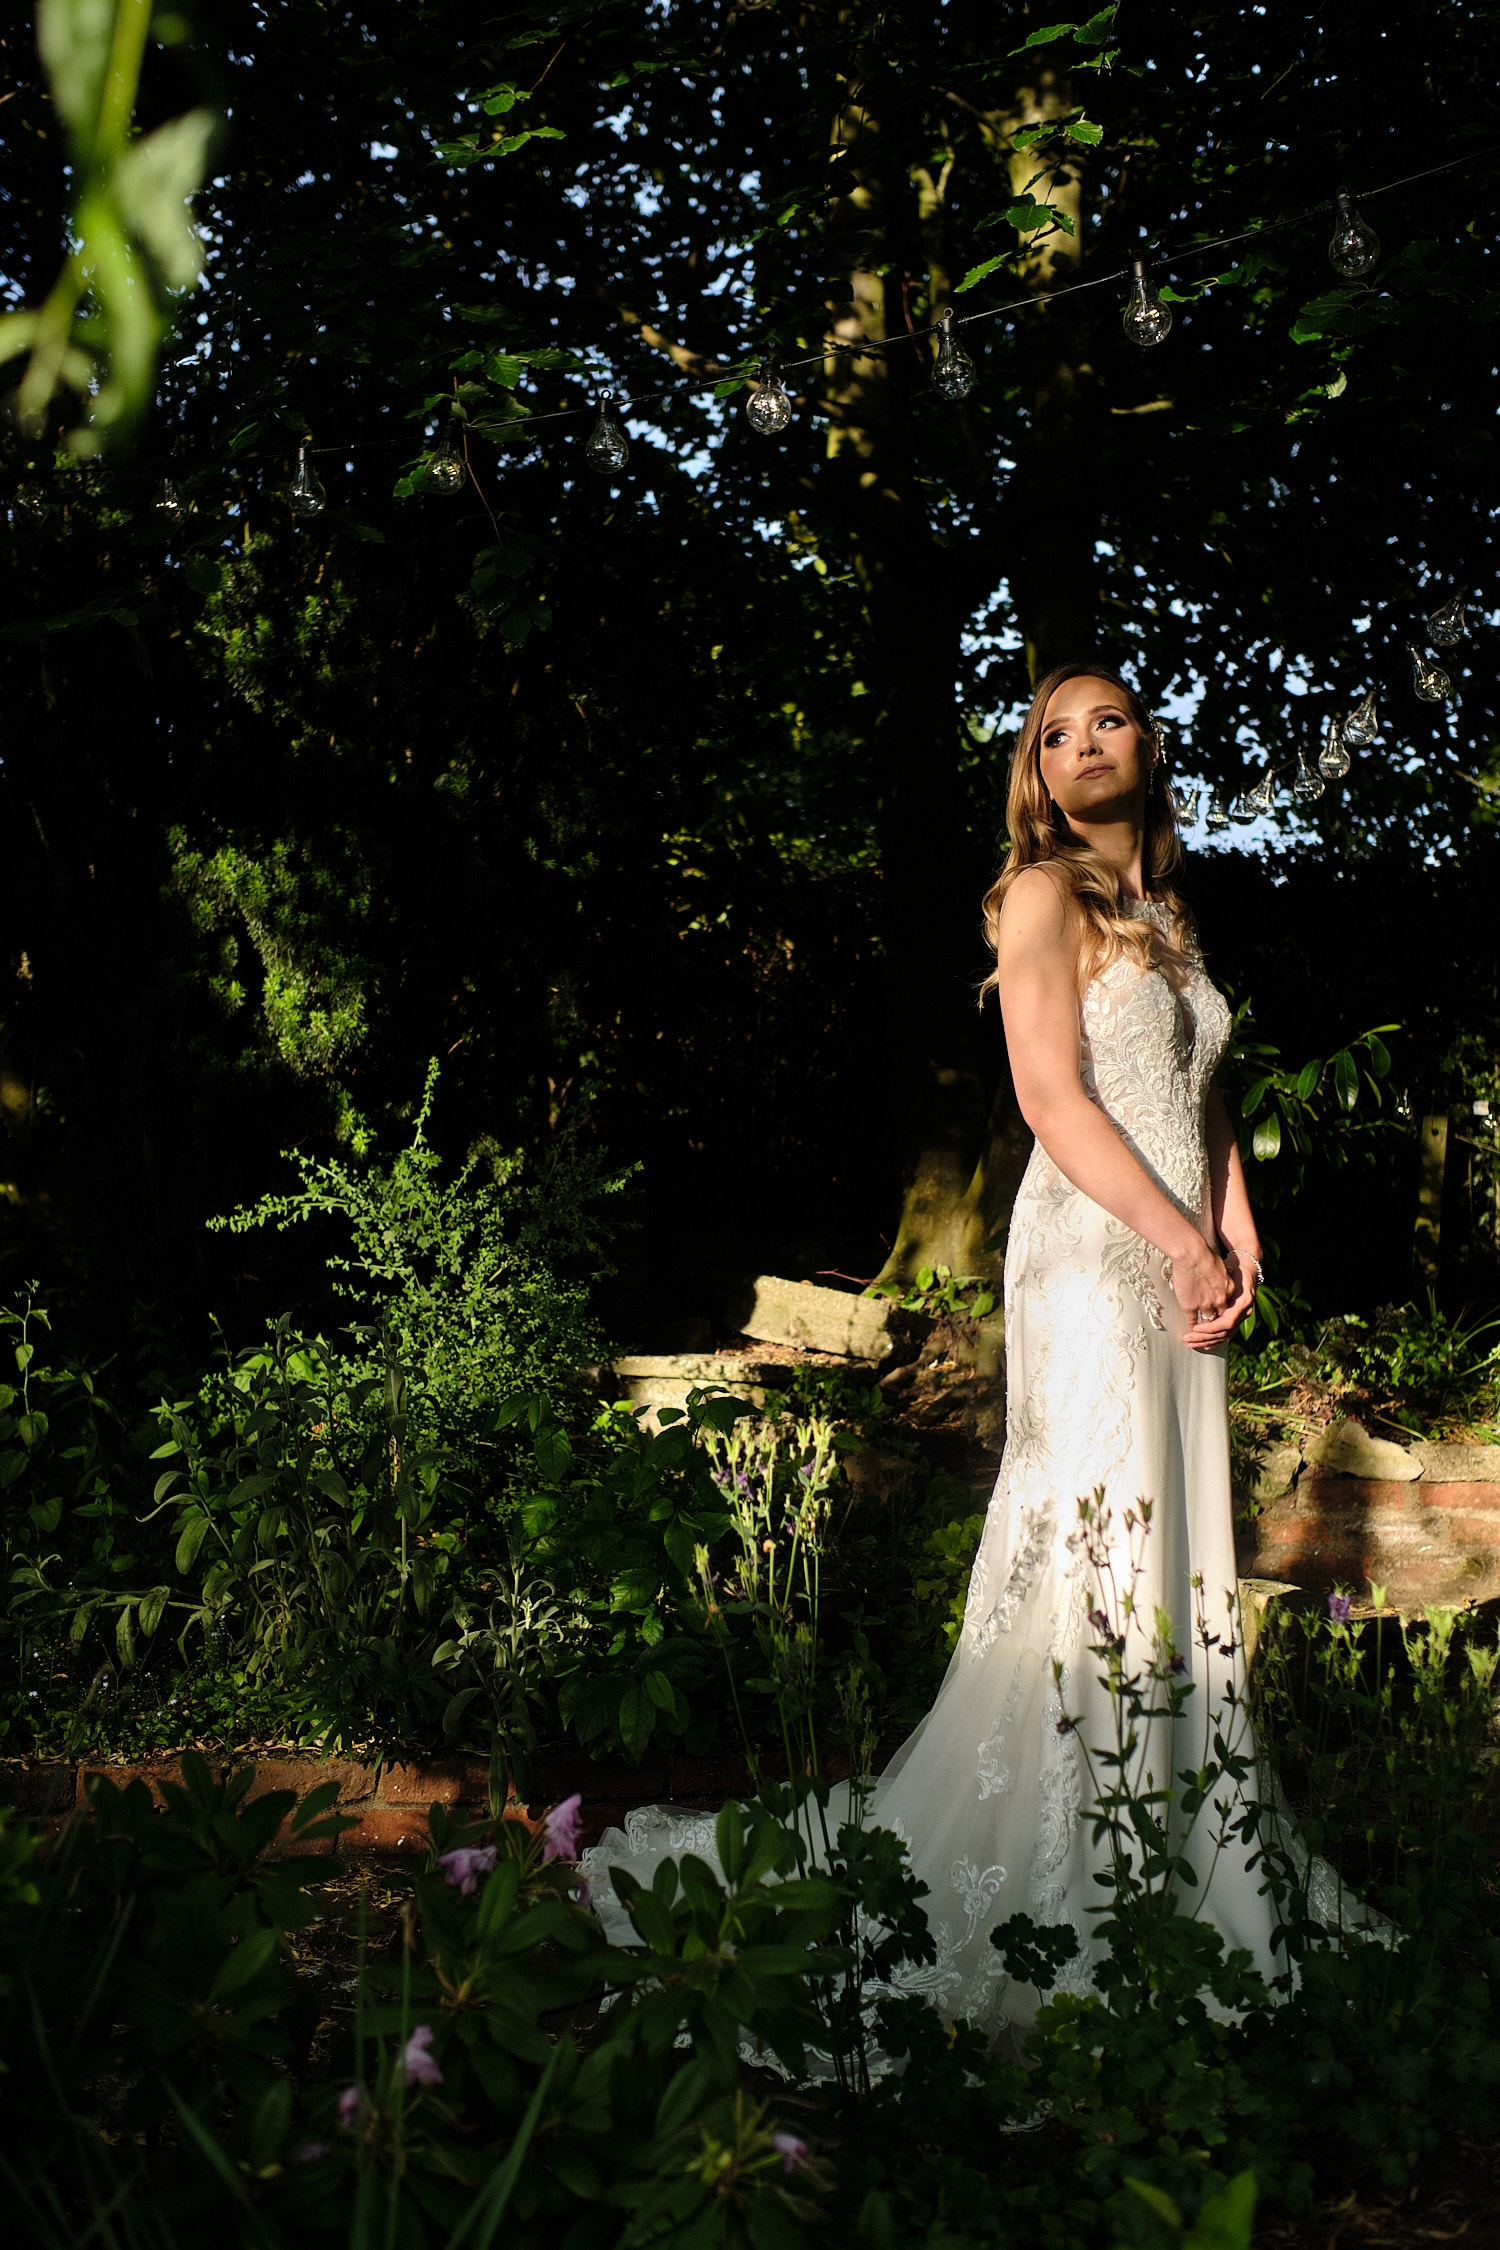 A bride poses in the garden of the Elm Tree Hundelby